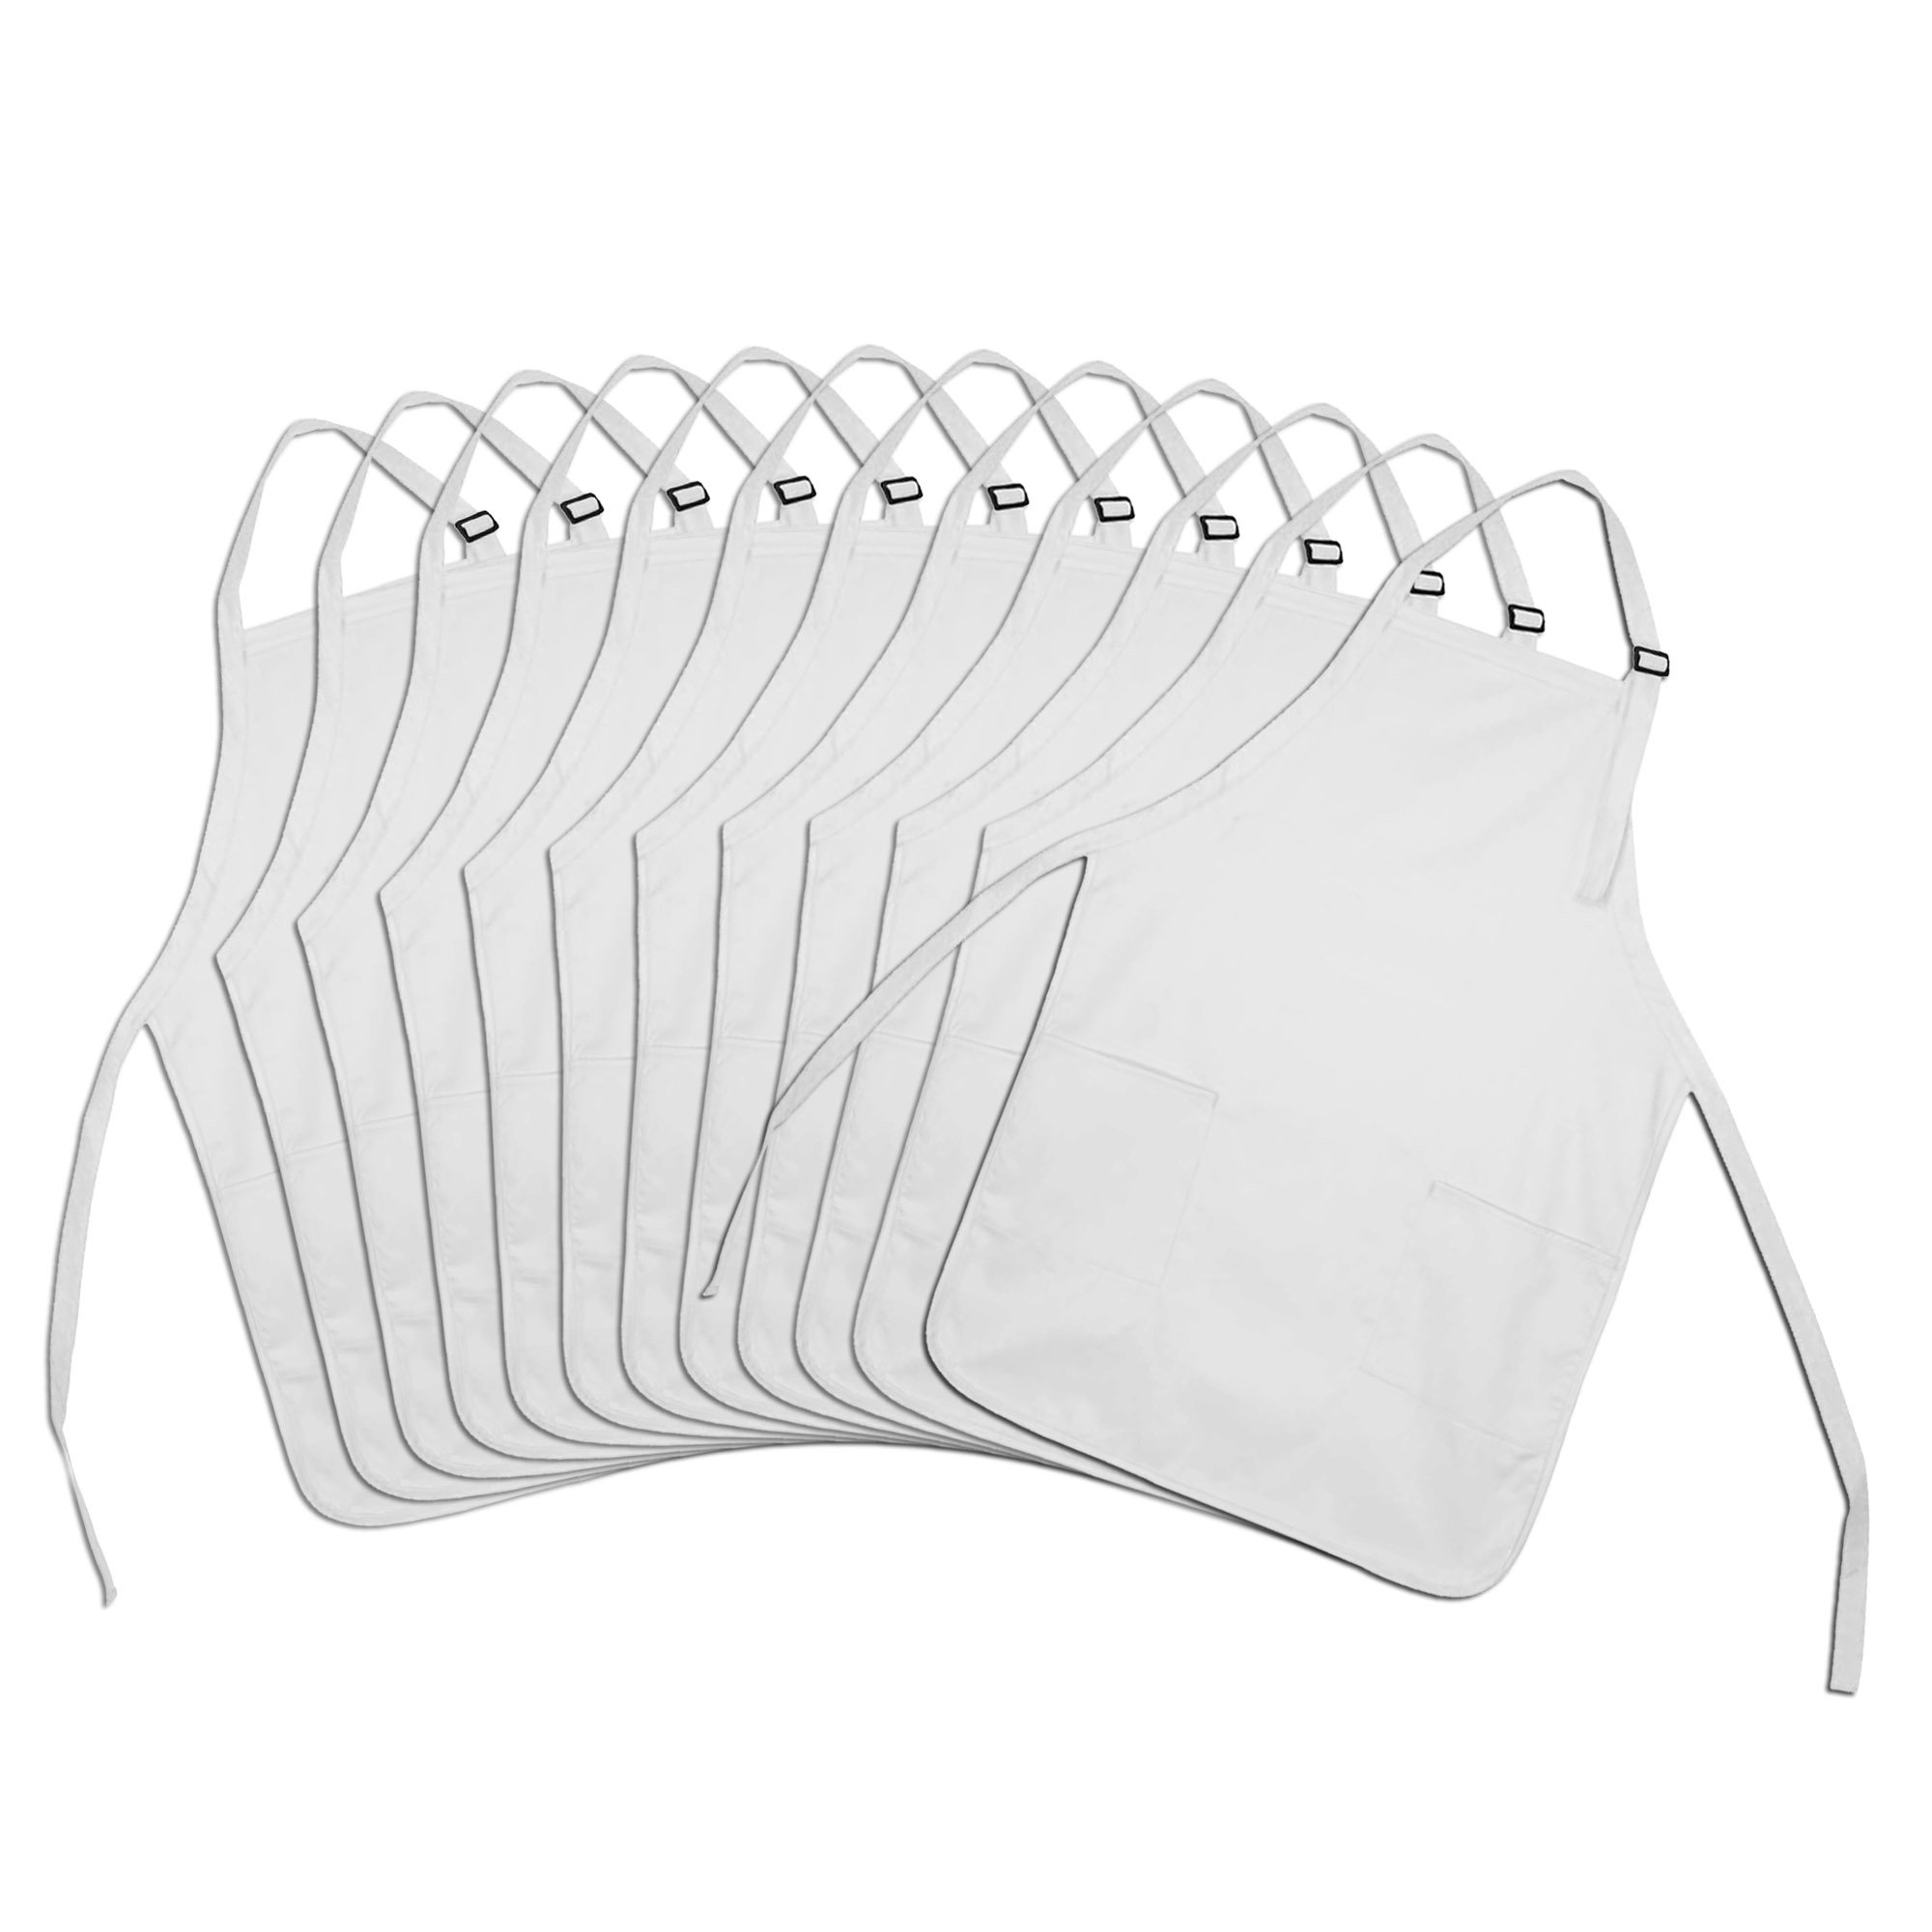 Apron Commercial Restaurant Home Bib Spun Poly Cotton Kitchen Aprons (2 Pockets) in White 12 Pack by DALIX